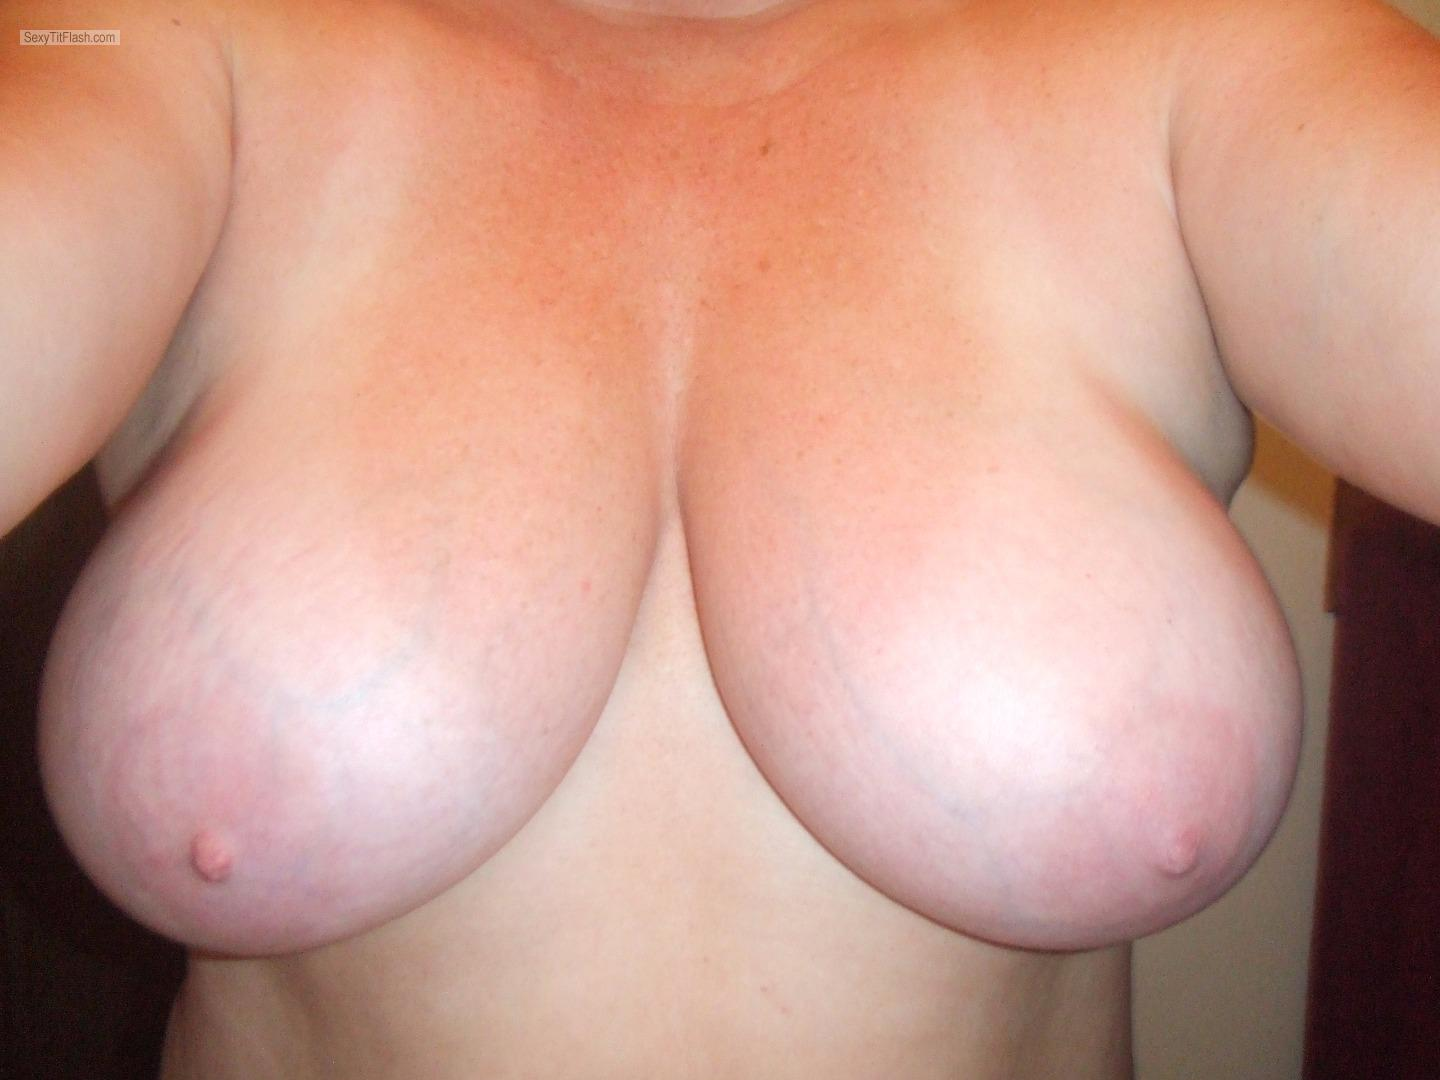 My Big Tits Selfie by Jabbas